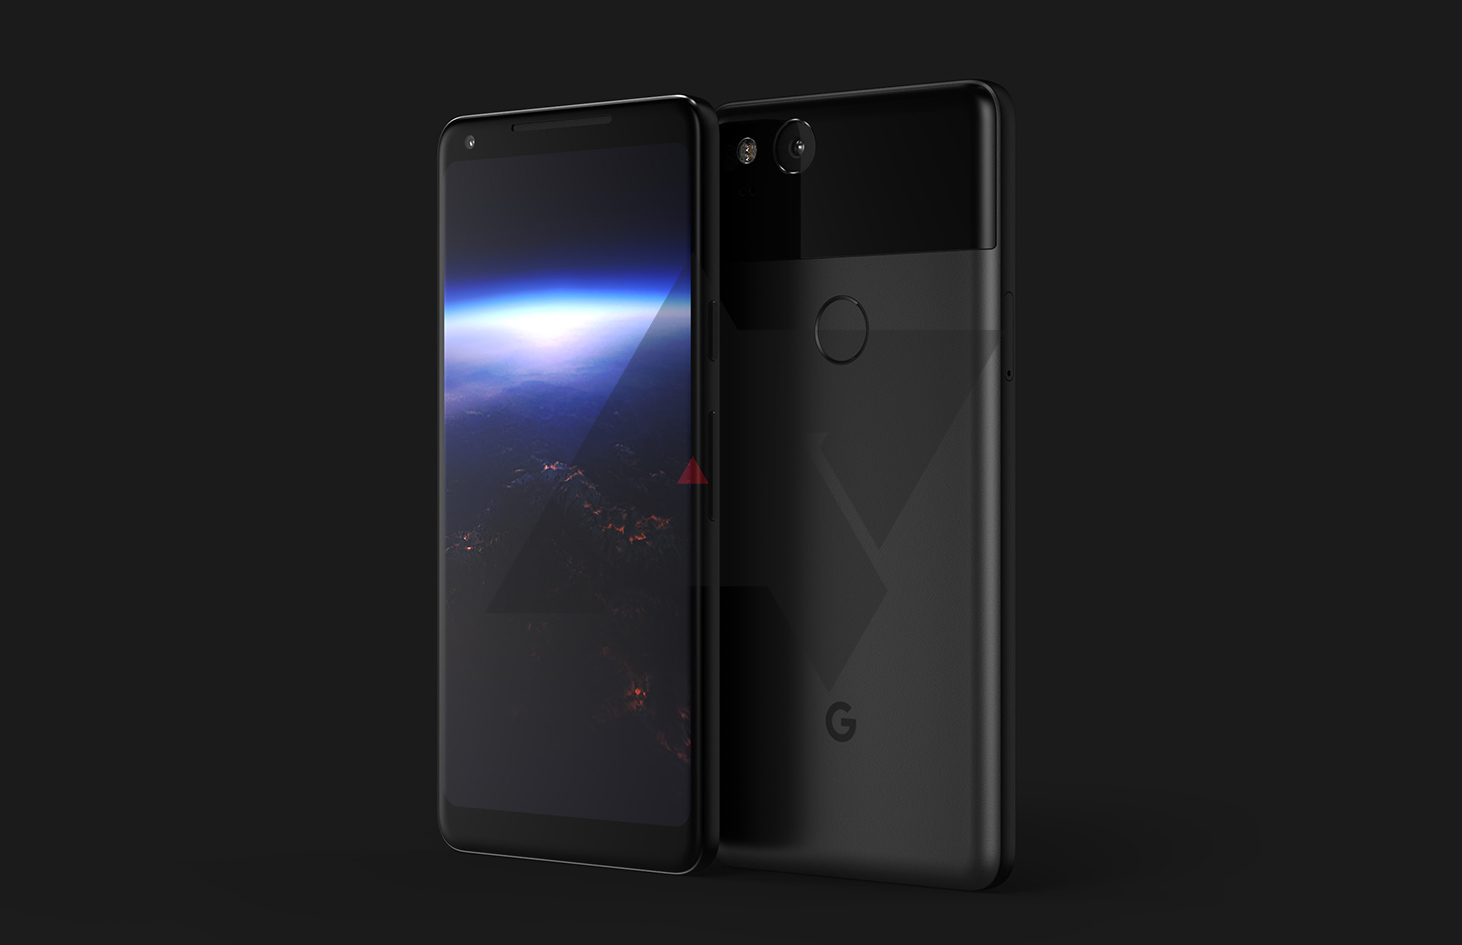 The First Image Of The Smartphone Google Pixel 2 XL Is Leaked